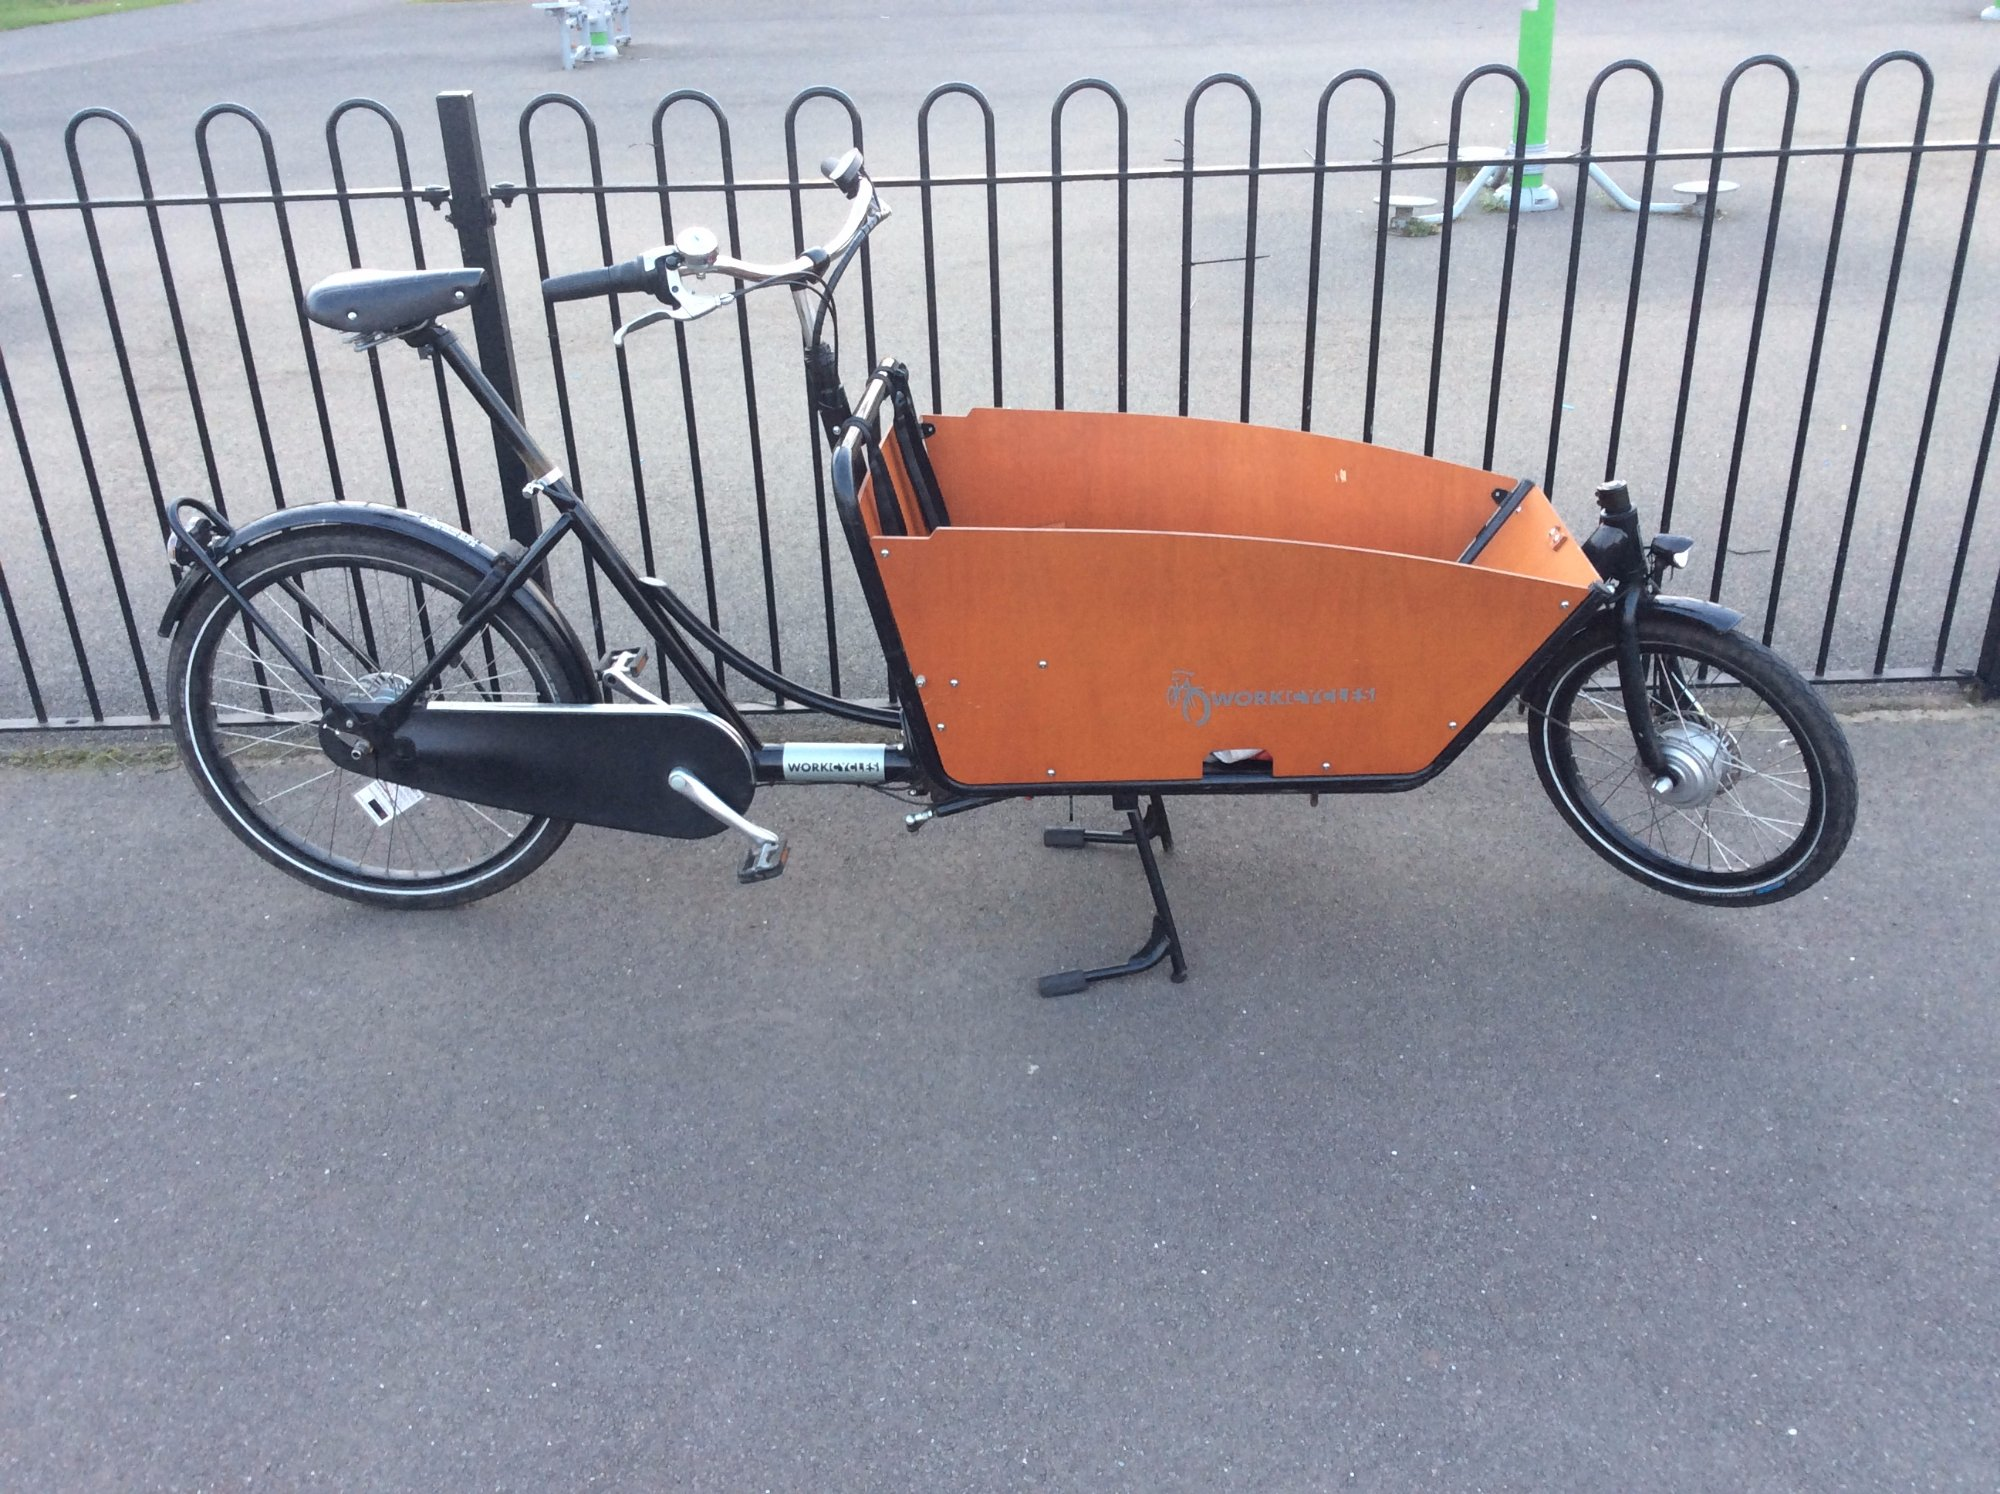 Manchester Bike Hire. The Top 10 Things to Do Near Levenshulme Antiques Village  Manchester